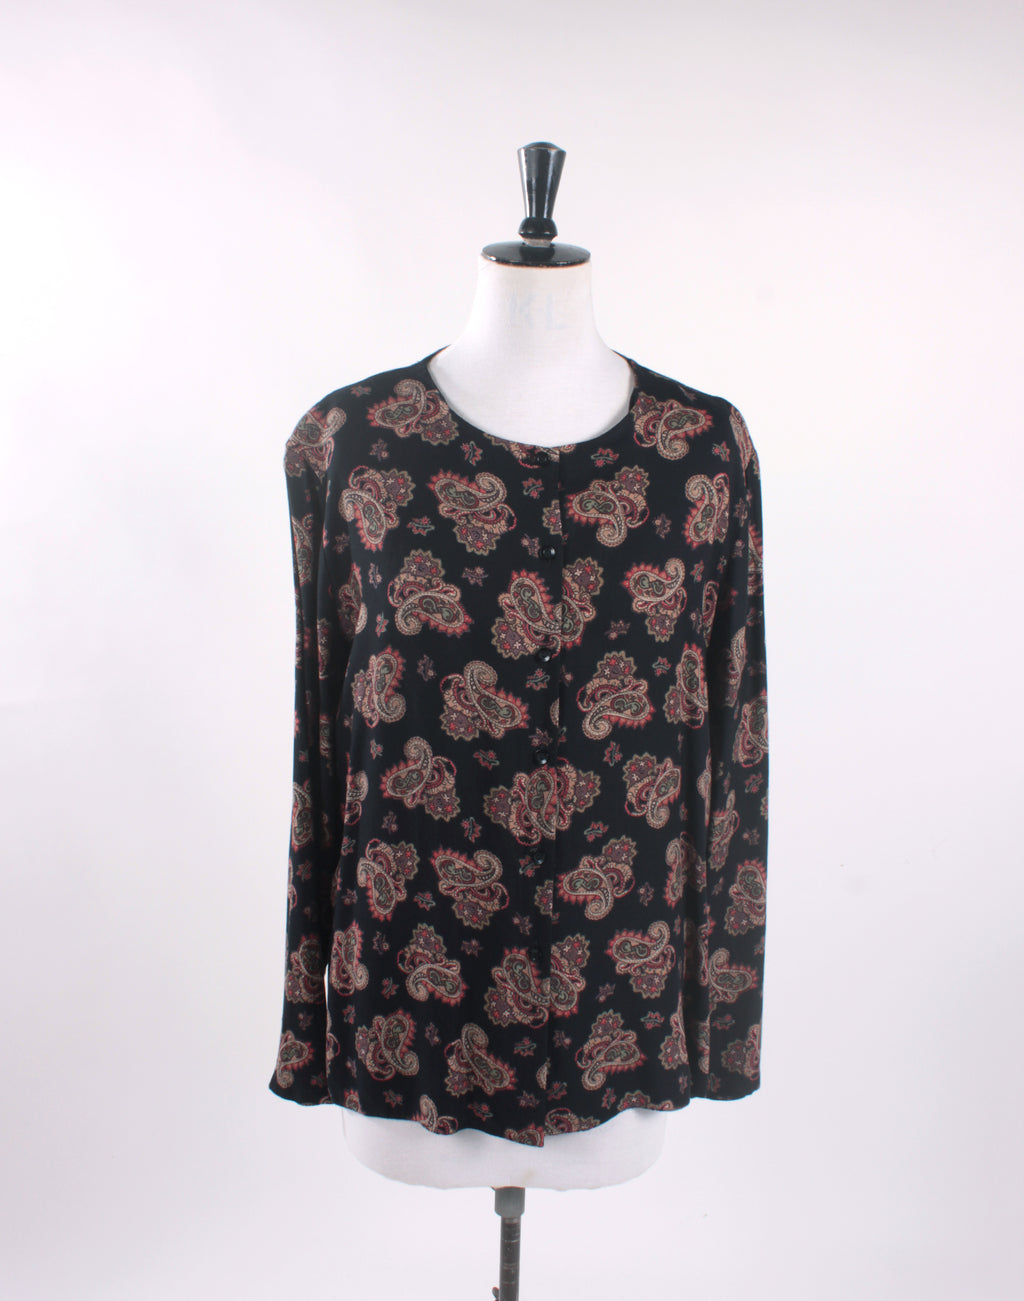 Vintage 90's Black Brown Paisley Long Sleeve Shirt